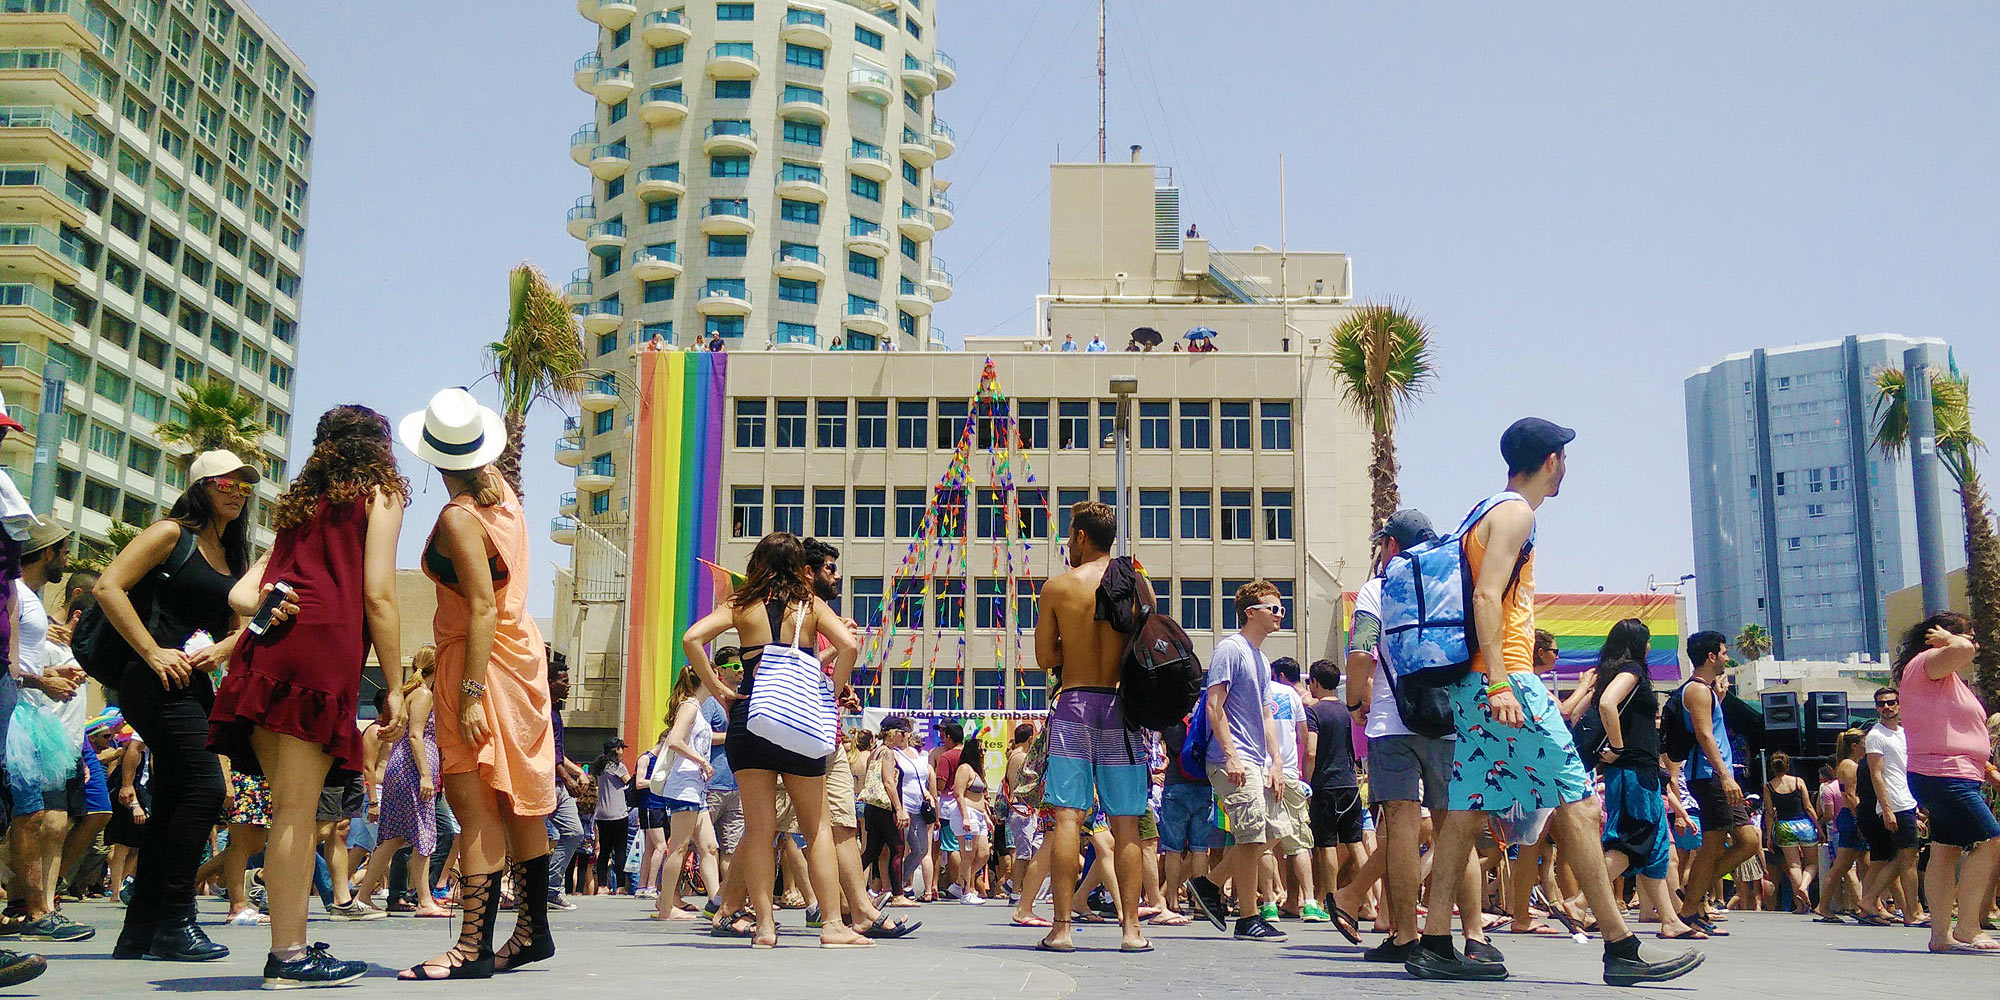 participants of the Tel Aviv Pride walk down the beach promenade in front of the US embassy with a long rainbow flag and the Hotel Isrotel